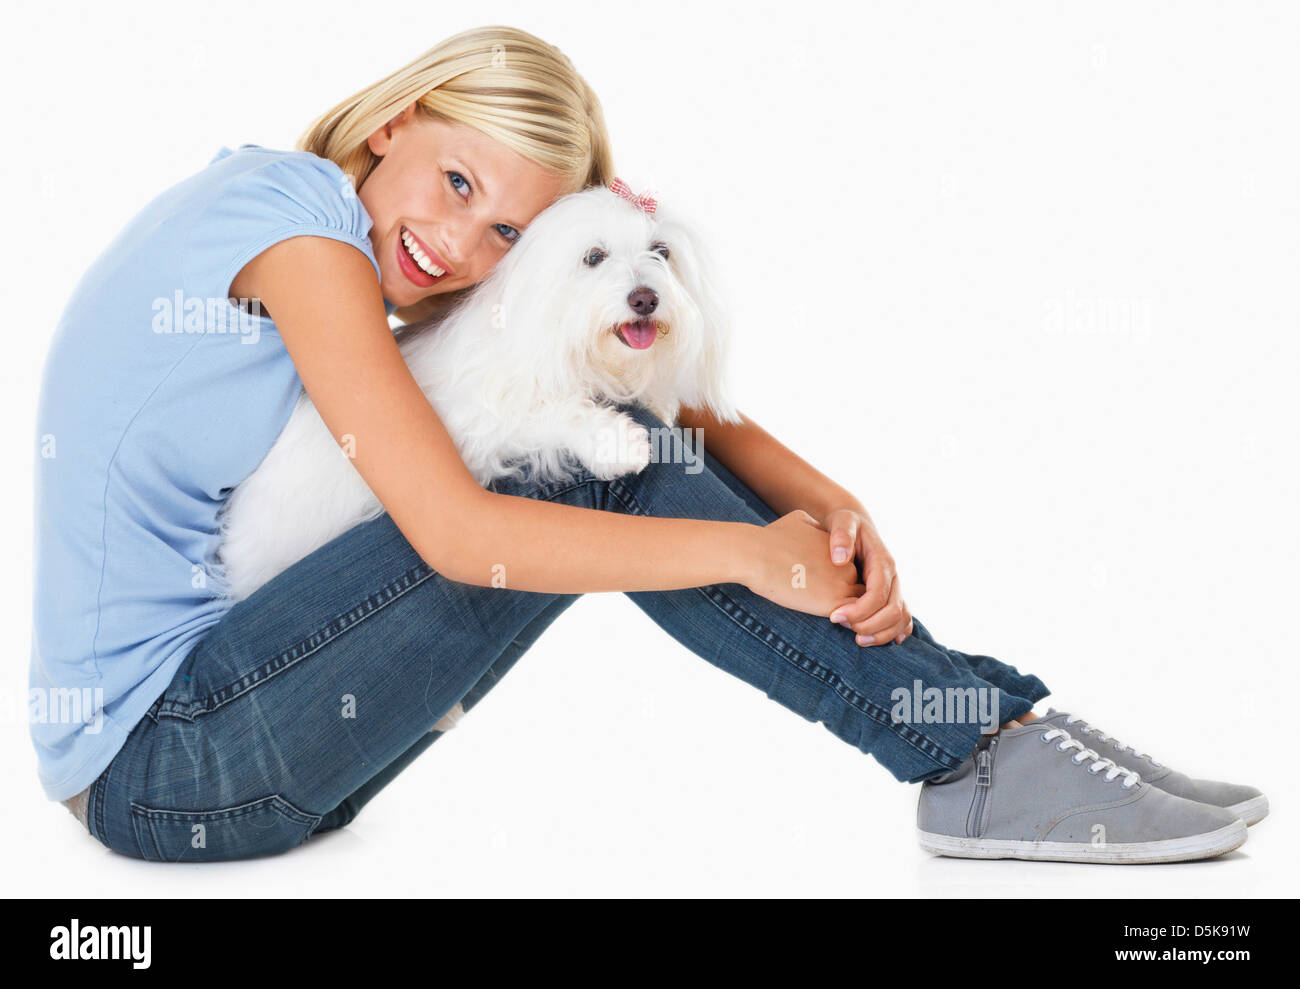 Studio Shot, Portrait of young woman sitting and holding dog - Stock Image